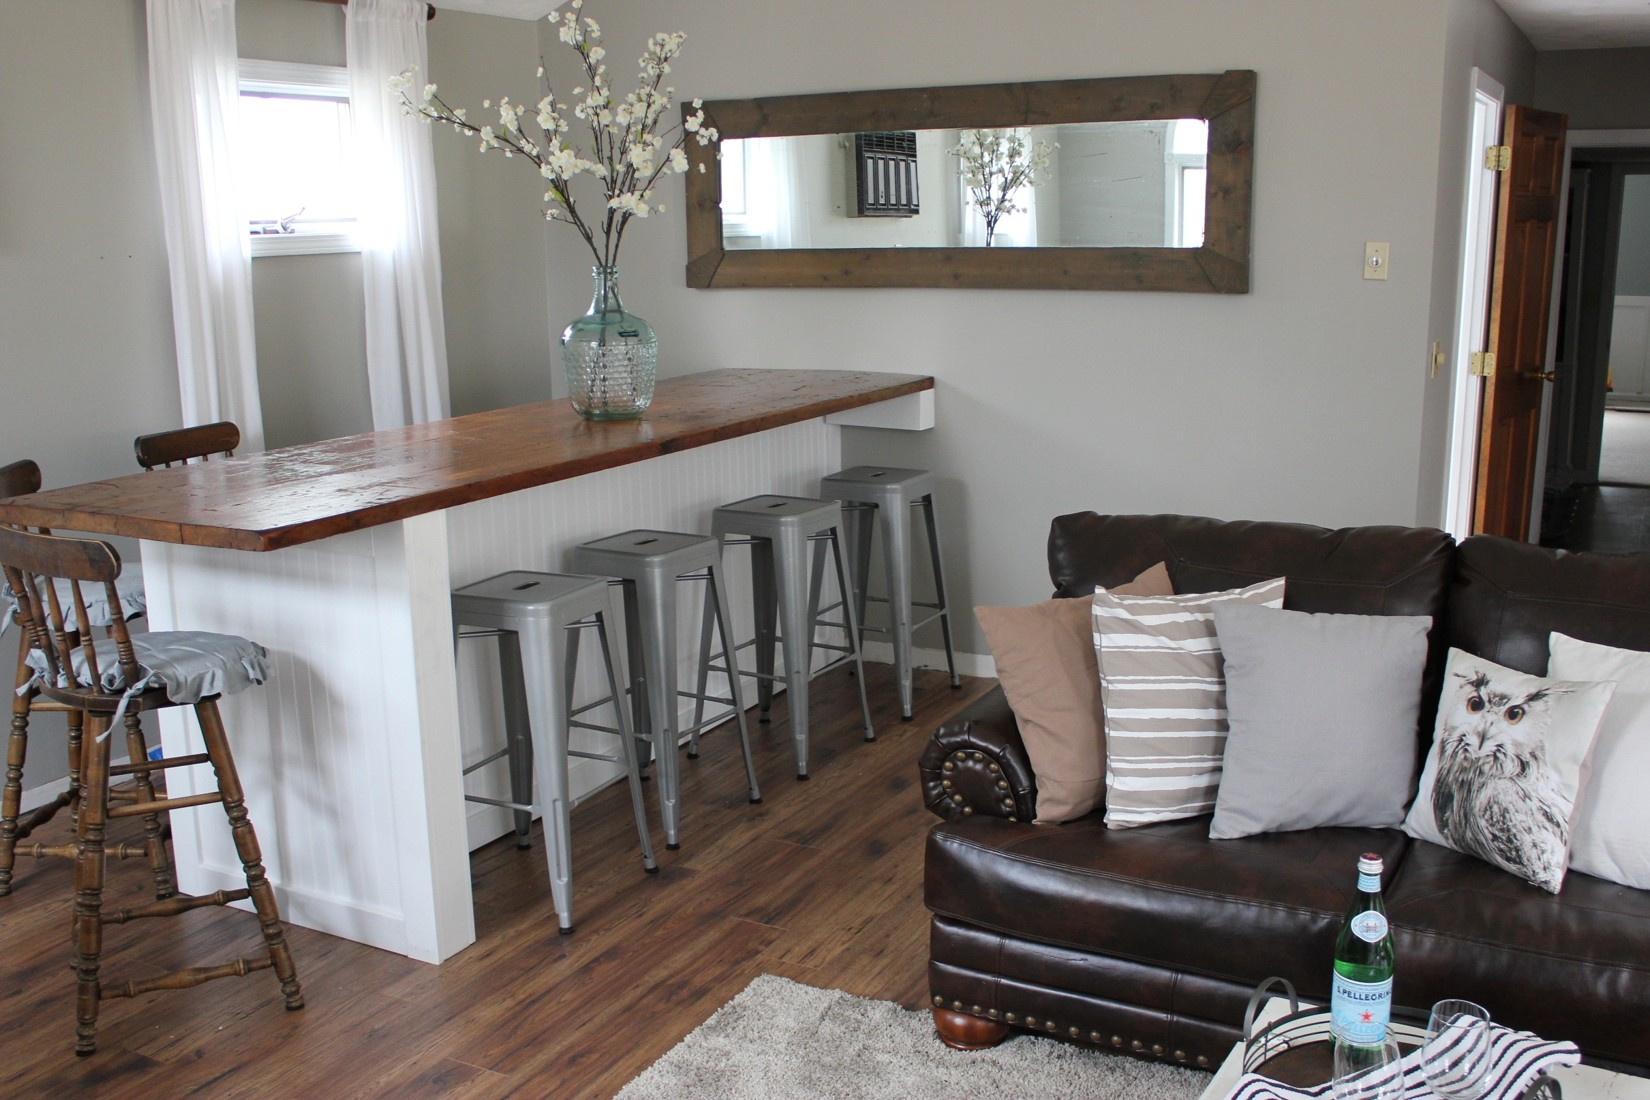 Kitchen island with stools on both sides - I Found The Metal Bar Stools On Amazon For An Amazing Deal And The Swivel Wood Stools Were A Find By The Side Of The Road